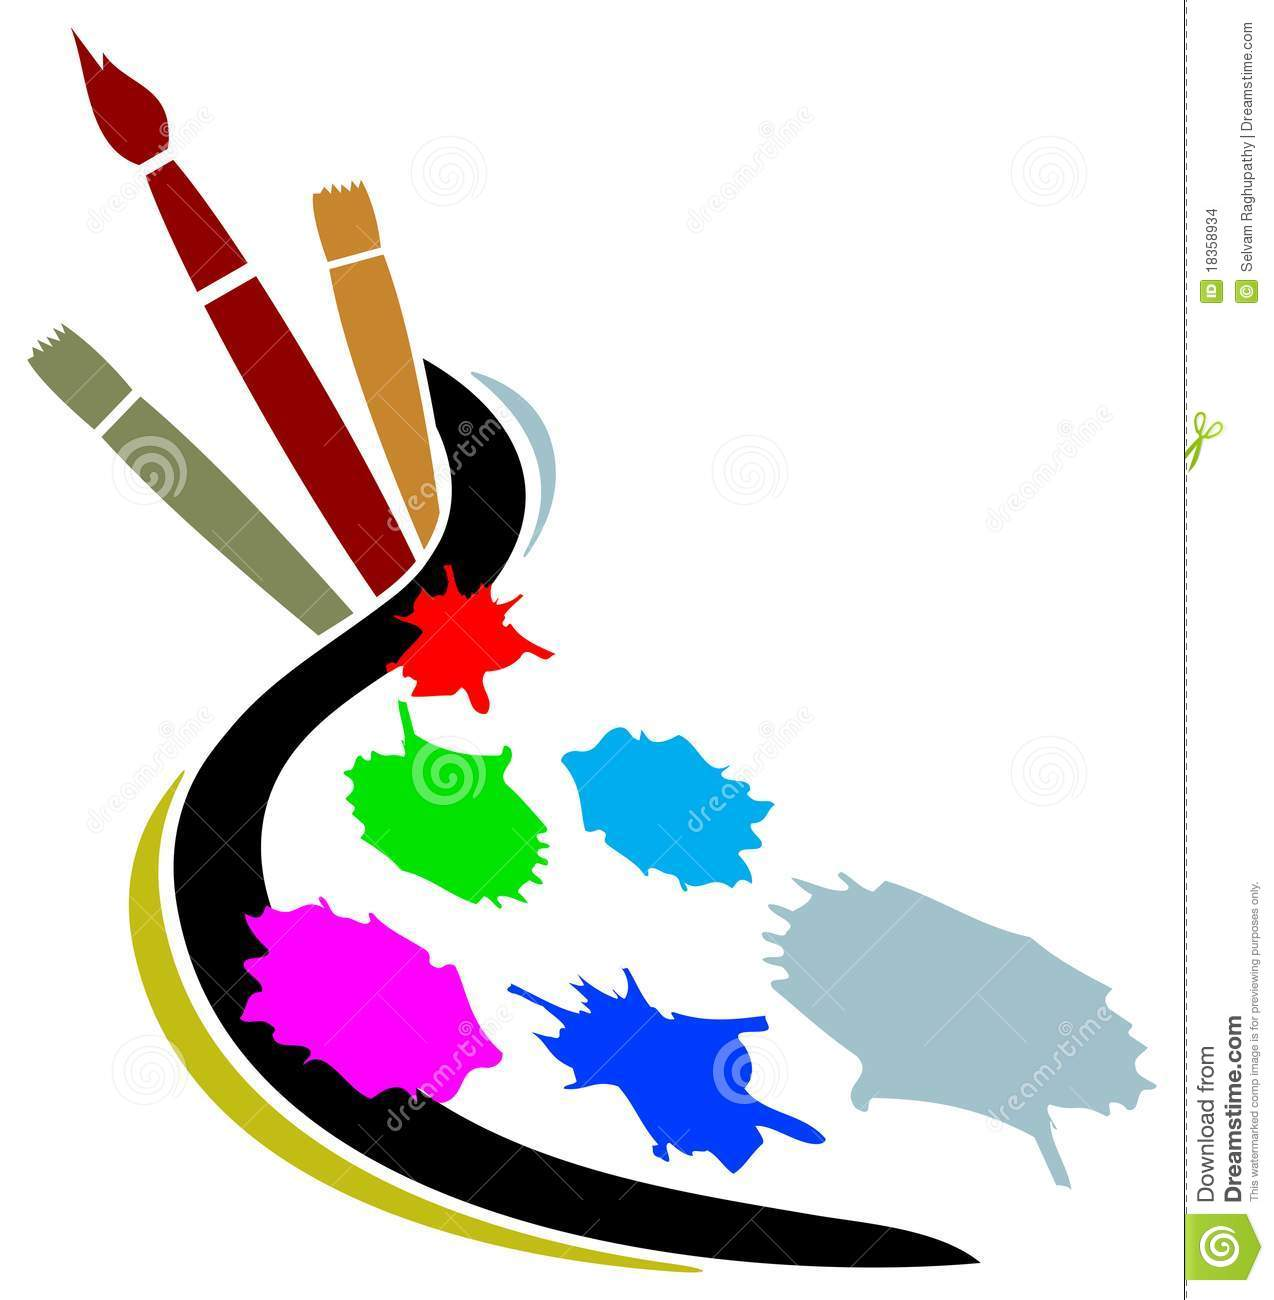 artist studio logos artists line result artwork brush graphic vector cool illustration painter preview arte google dreamstime